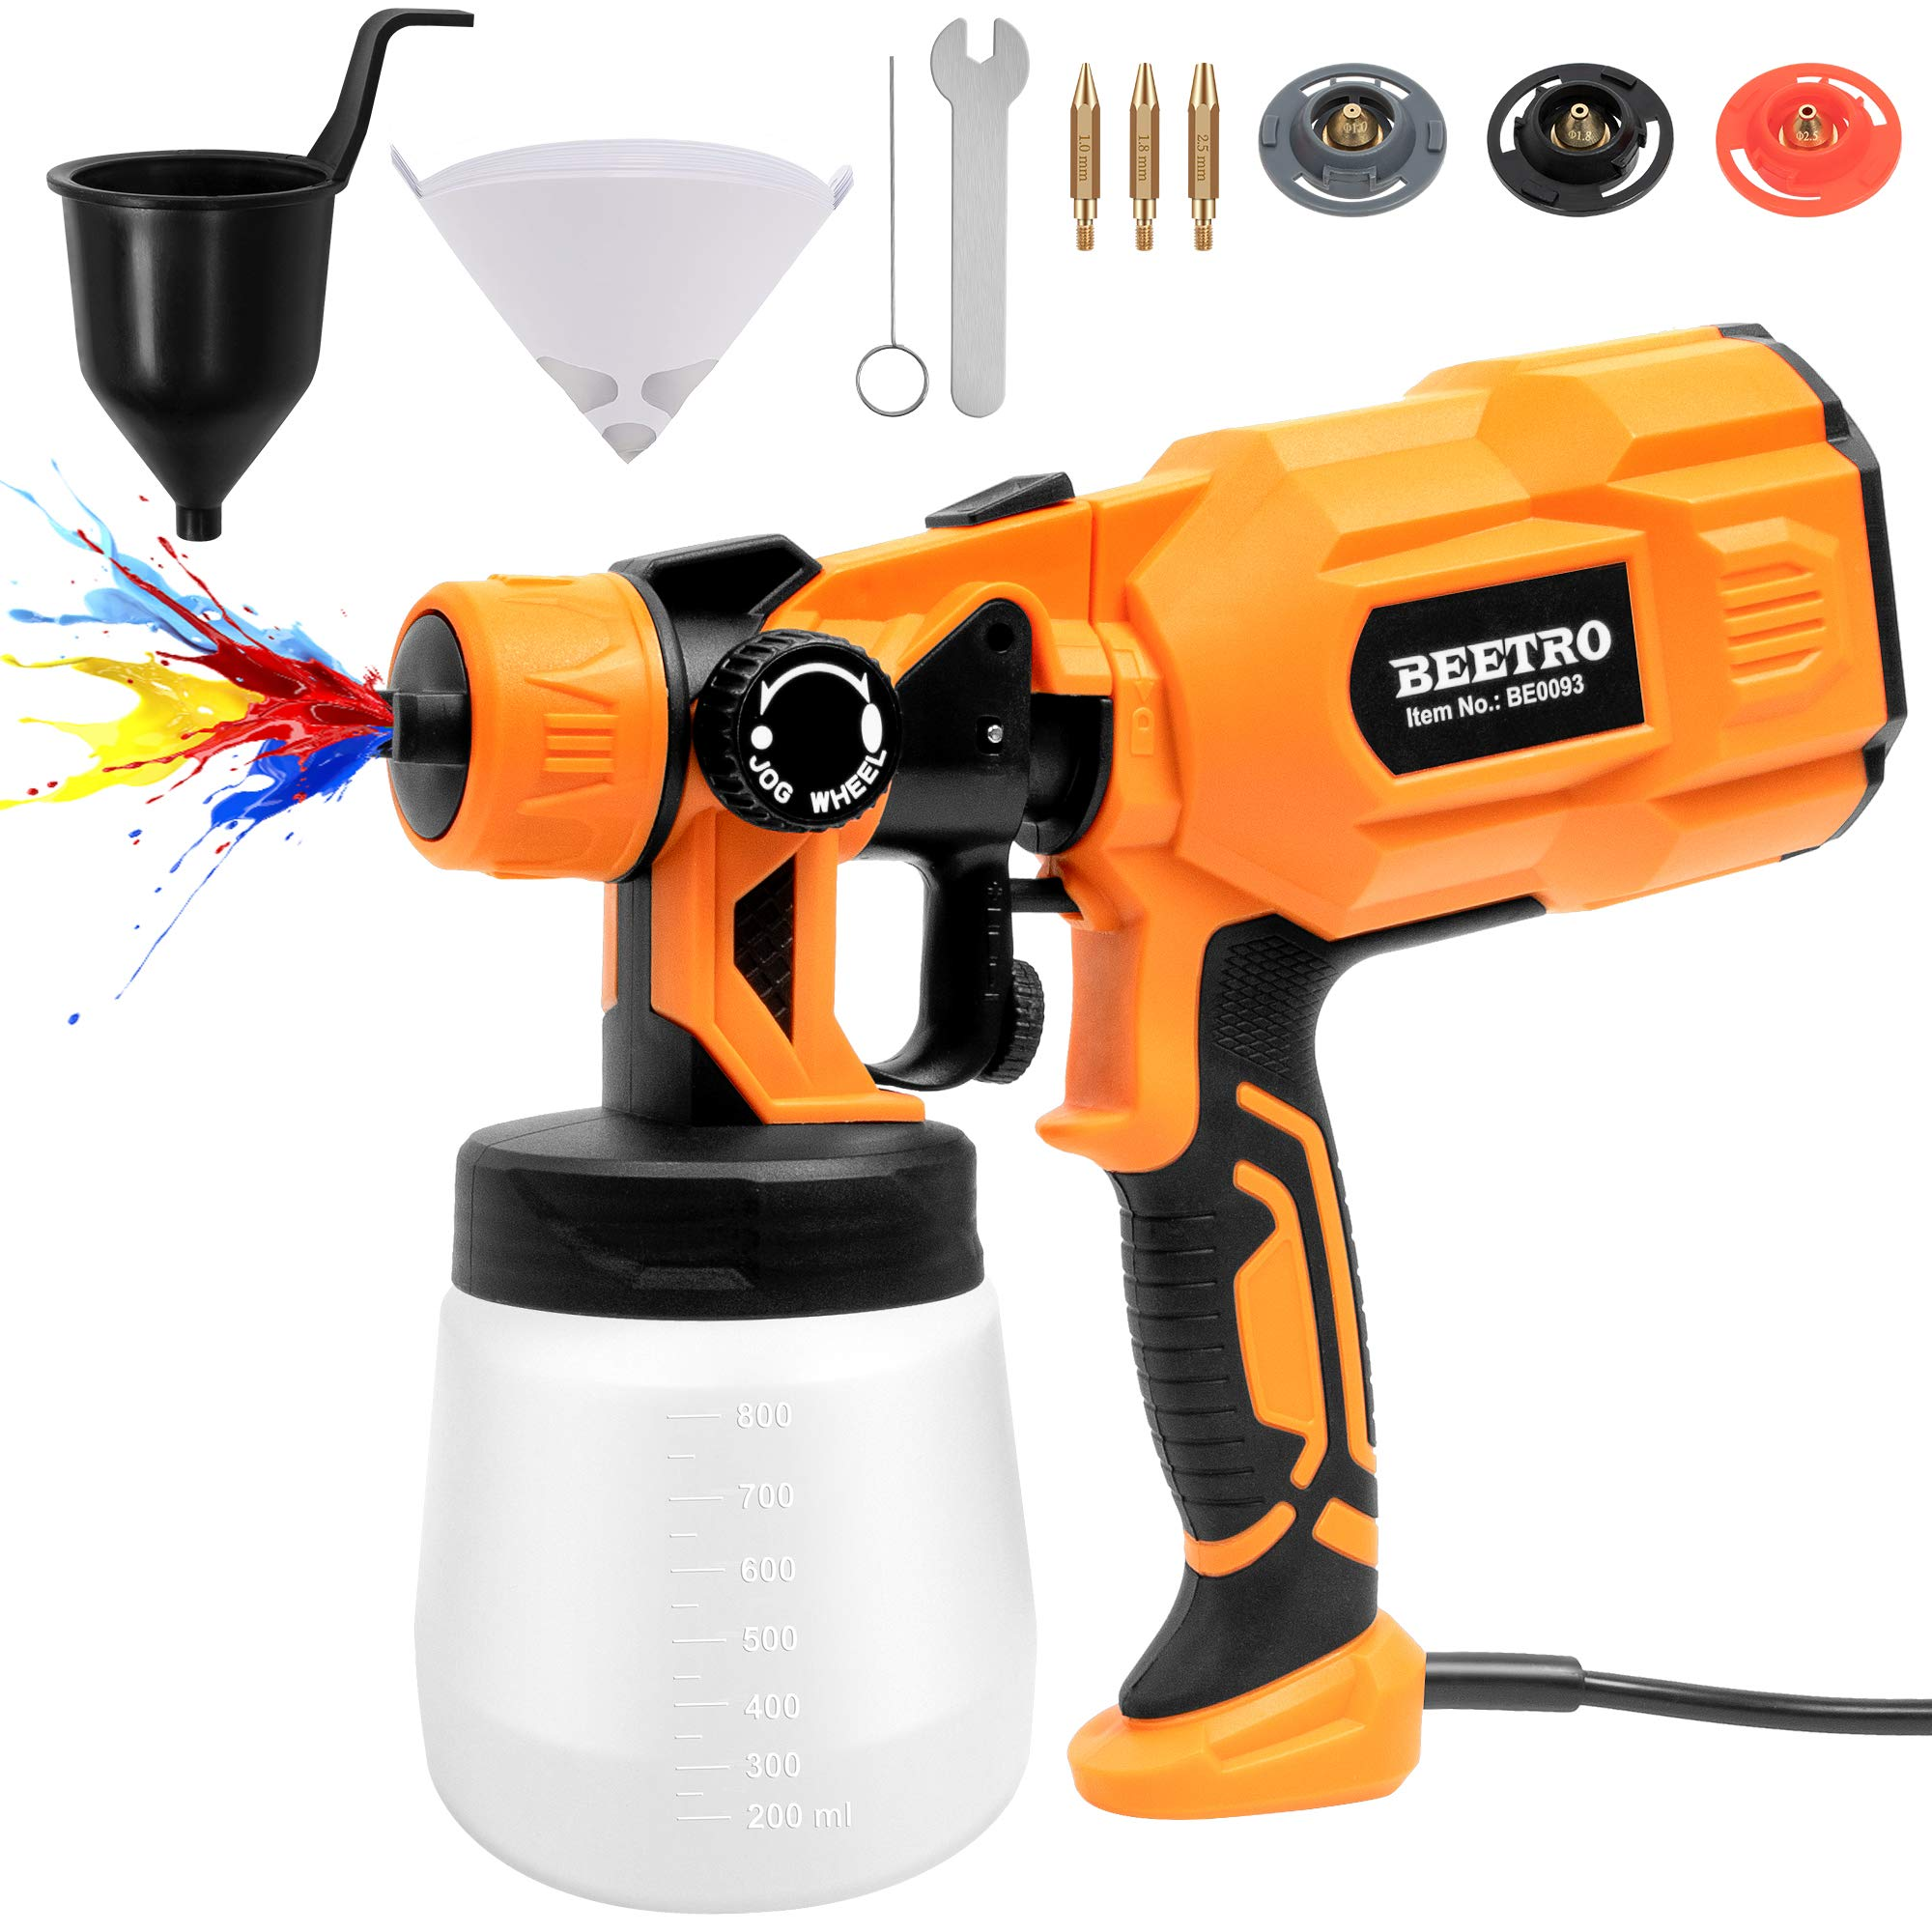 BEETRO Paint Spray Gun 550W High Power 450ml/min with 3 Premium Copper Nozzles and 10pcs 190 Micron Paint Strainers, 800ml Container HVLP Electric Sprayer for Home Easy Spraying and Cleaning